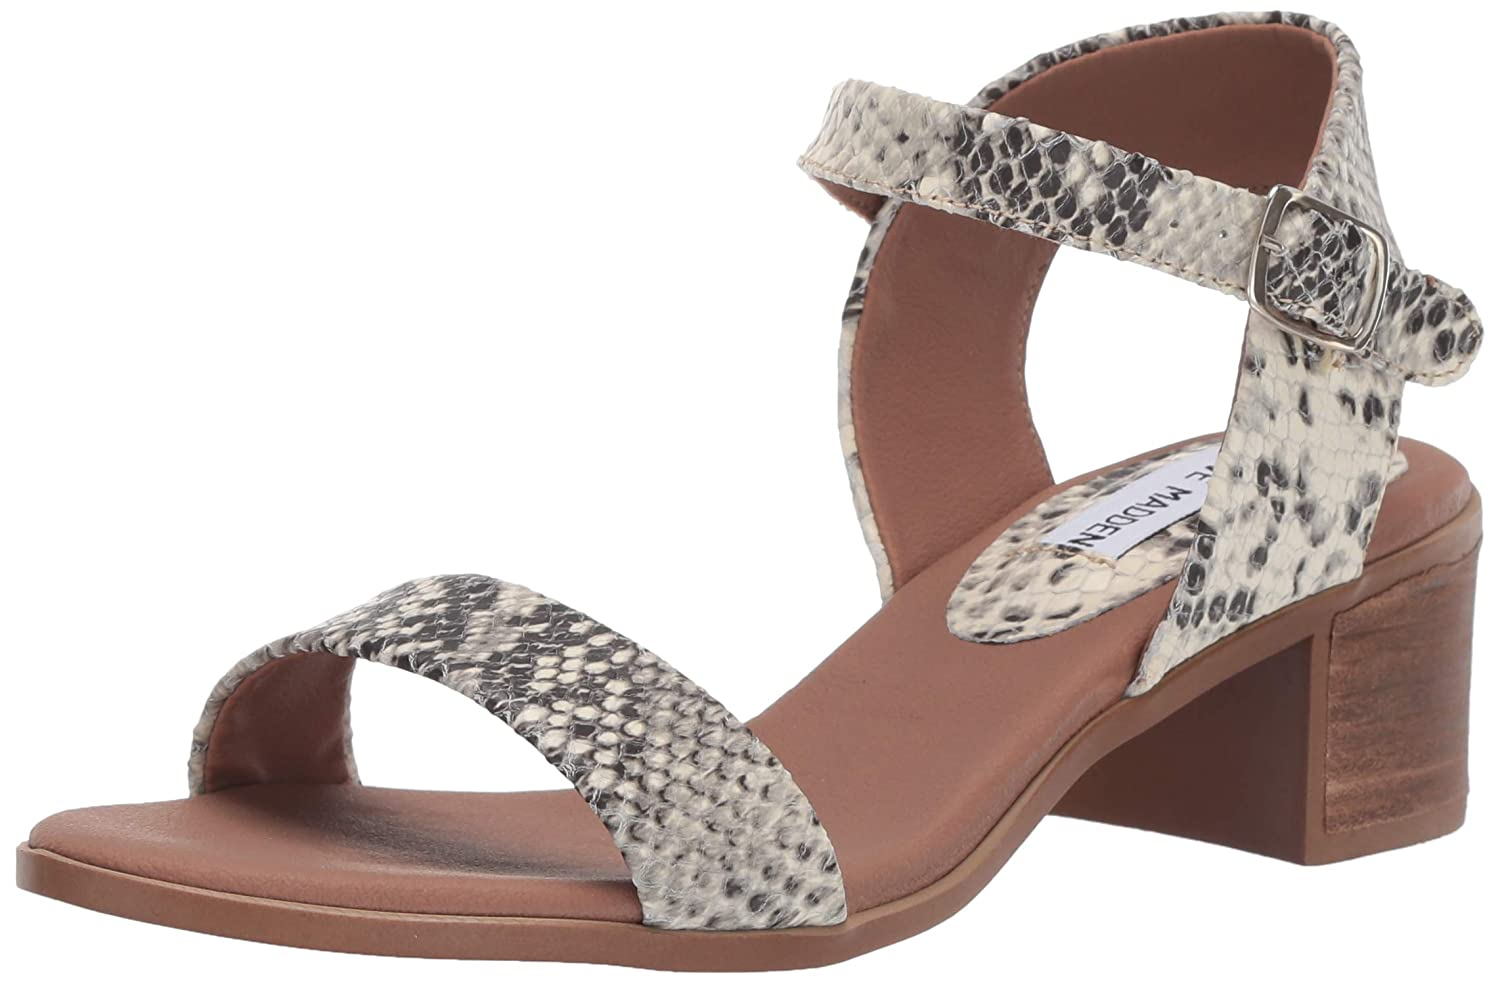 Natural Snake Steve Madden Women's April Heeled Sandal